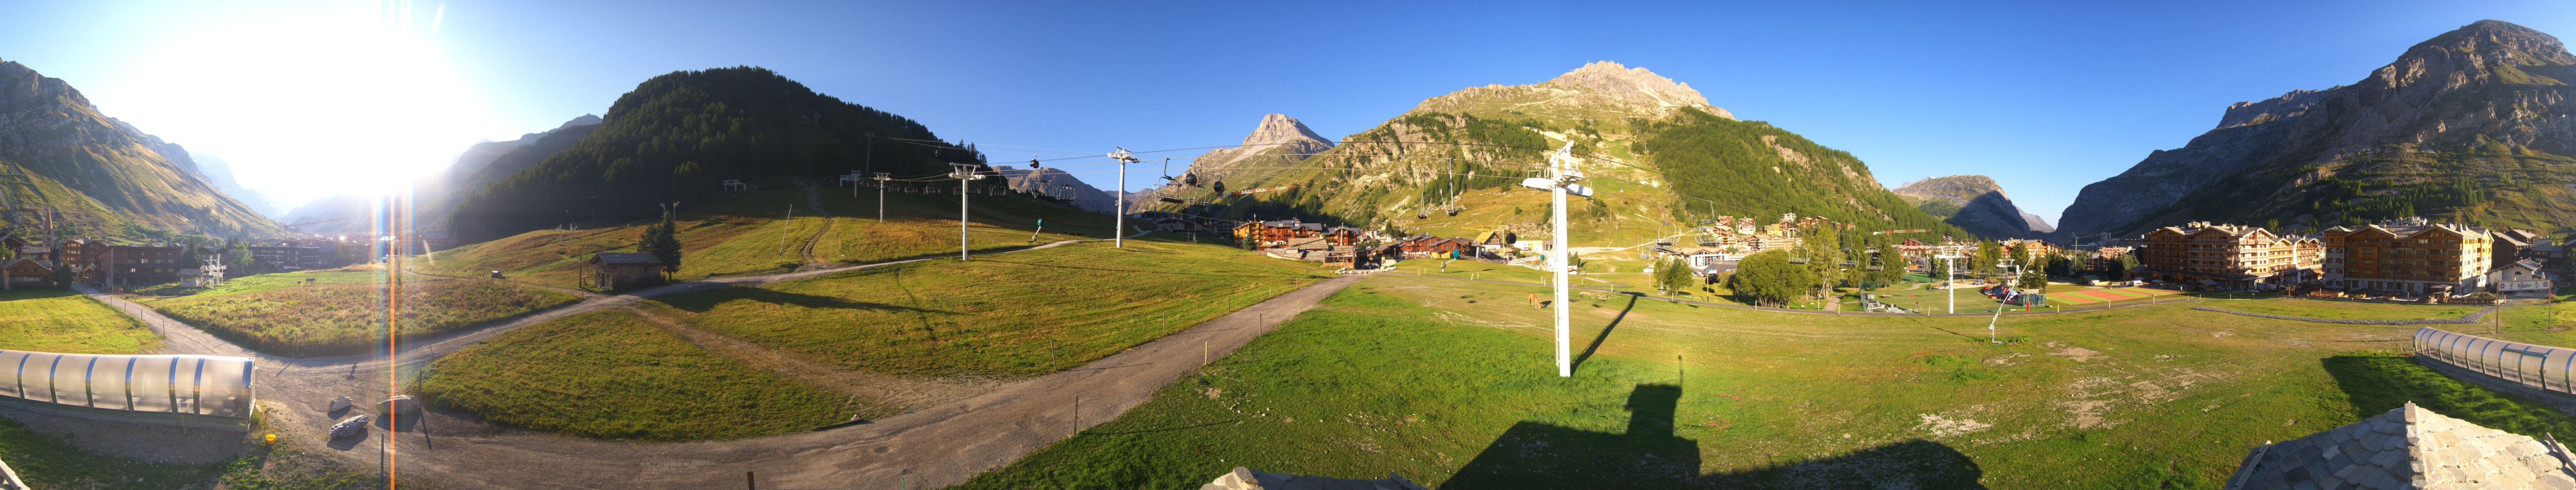 Fitness centre val disere webcam